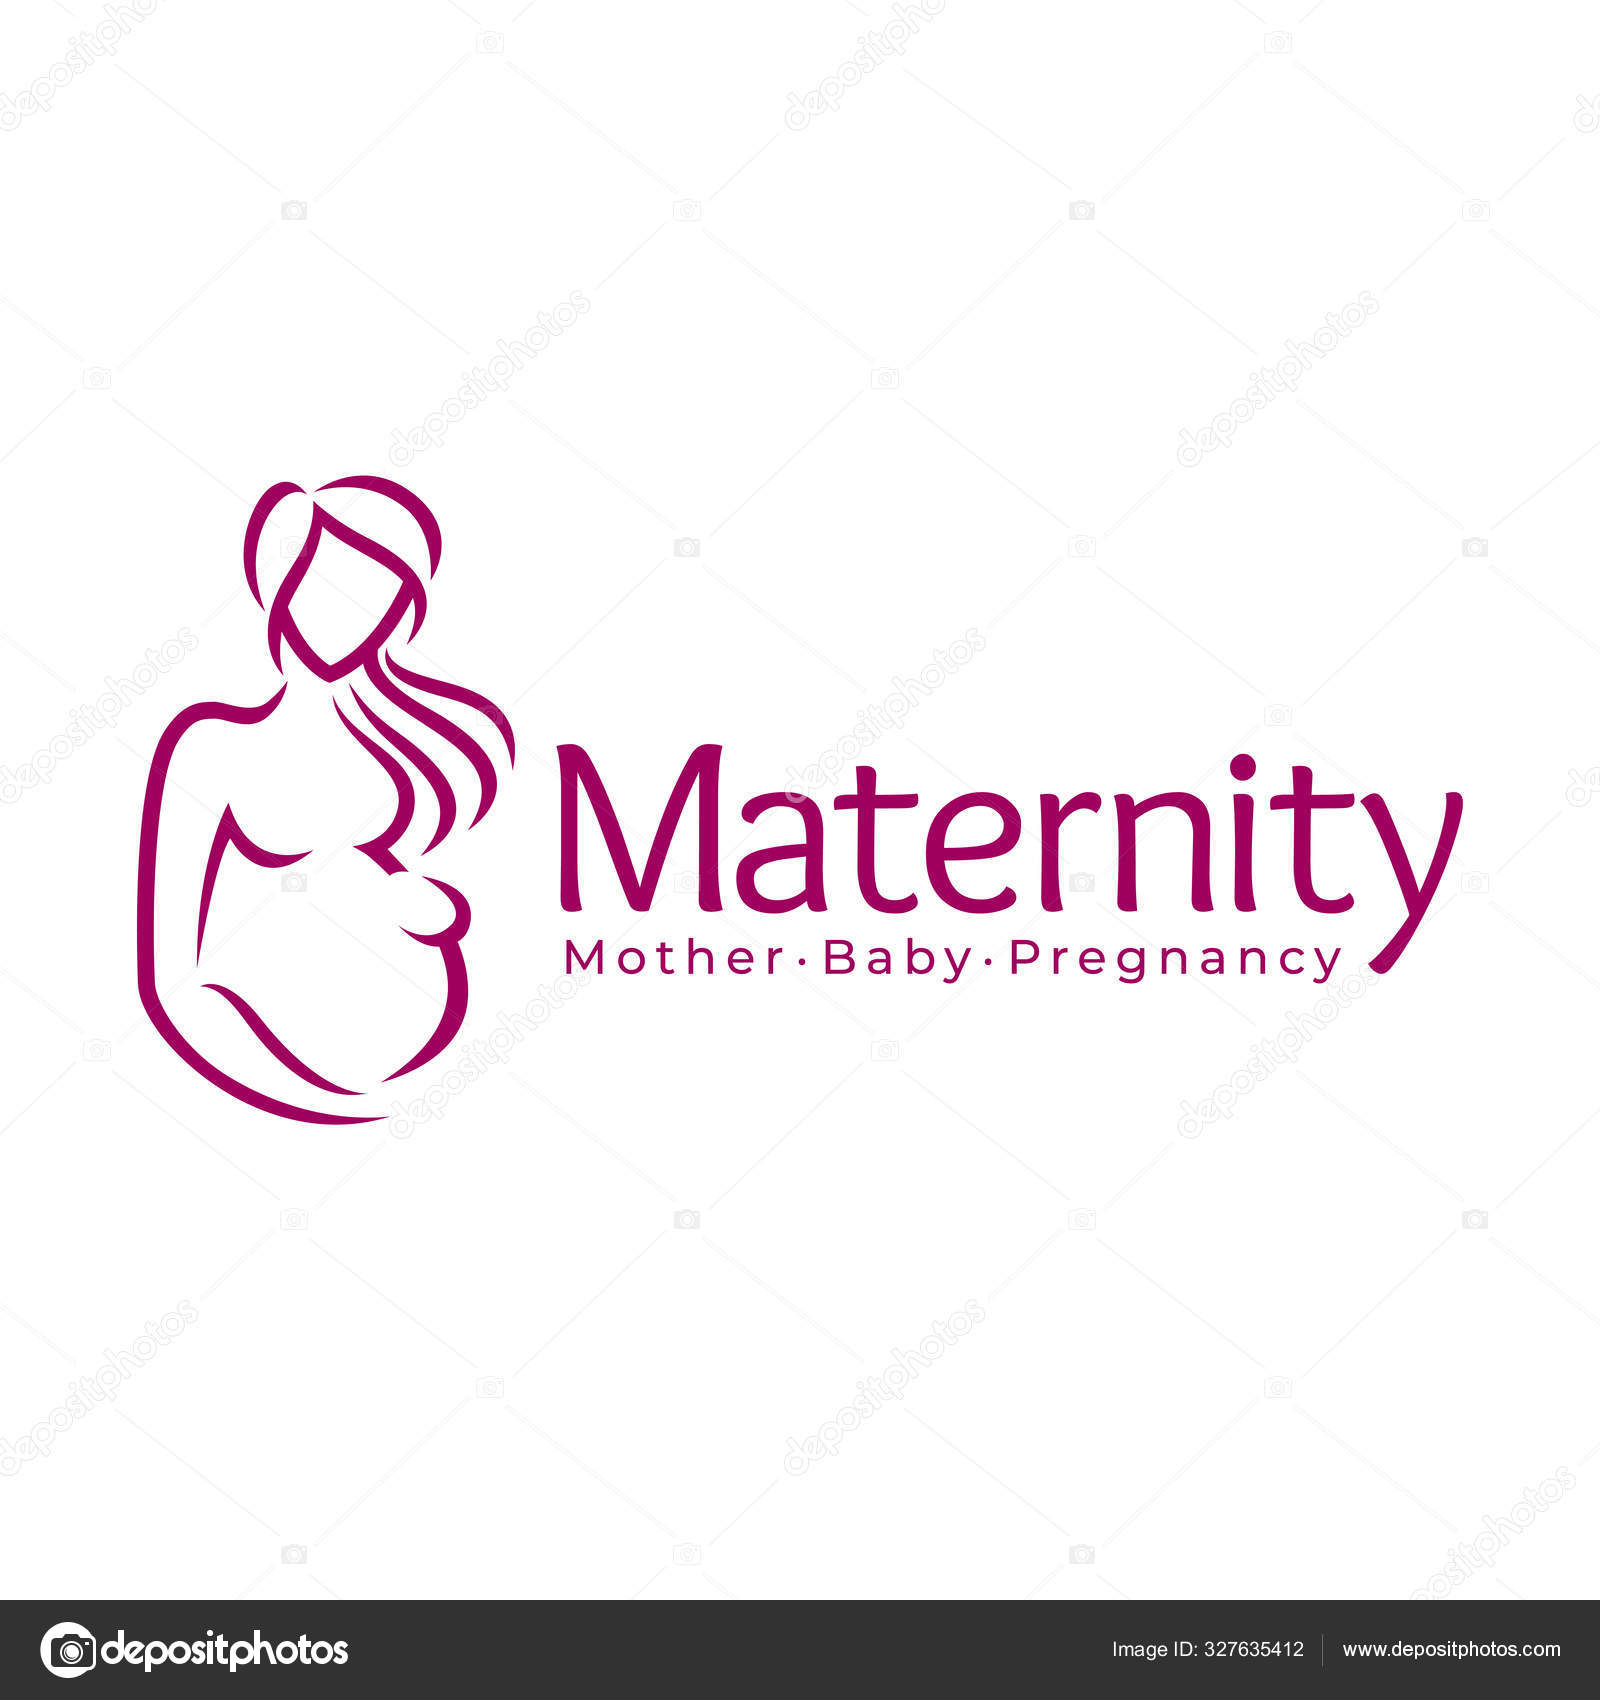 Maternity Logo Design Template Pregnancy Mother And Baby Symbol Or Icon Template Vector Image By C Ednalstudio Vector Stock 327635412